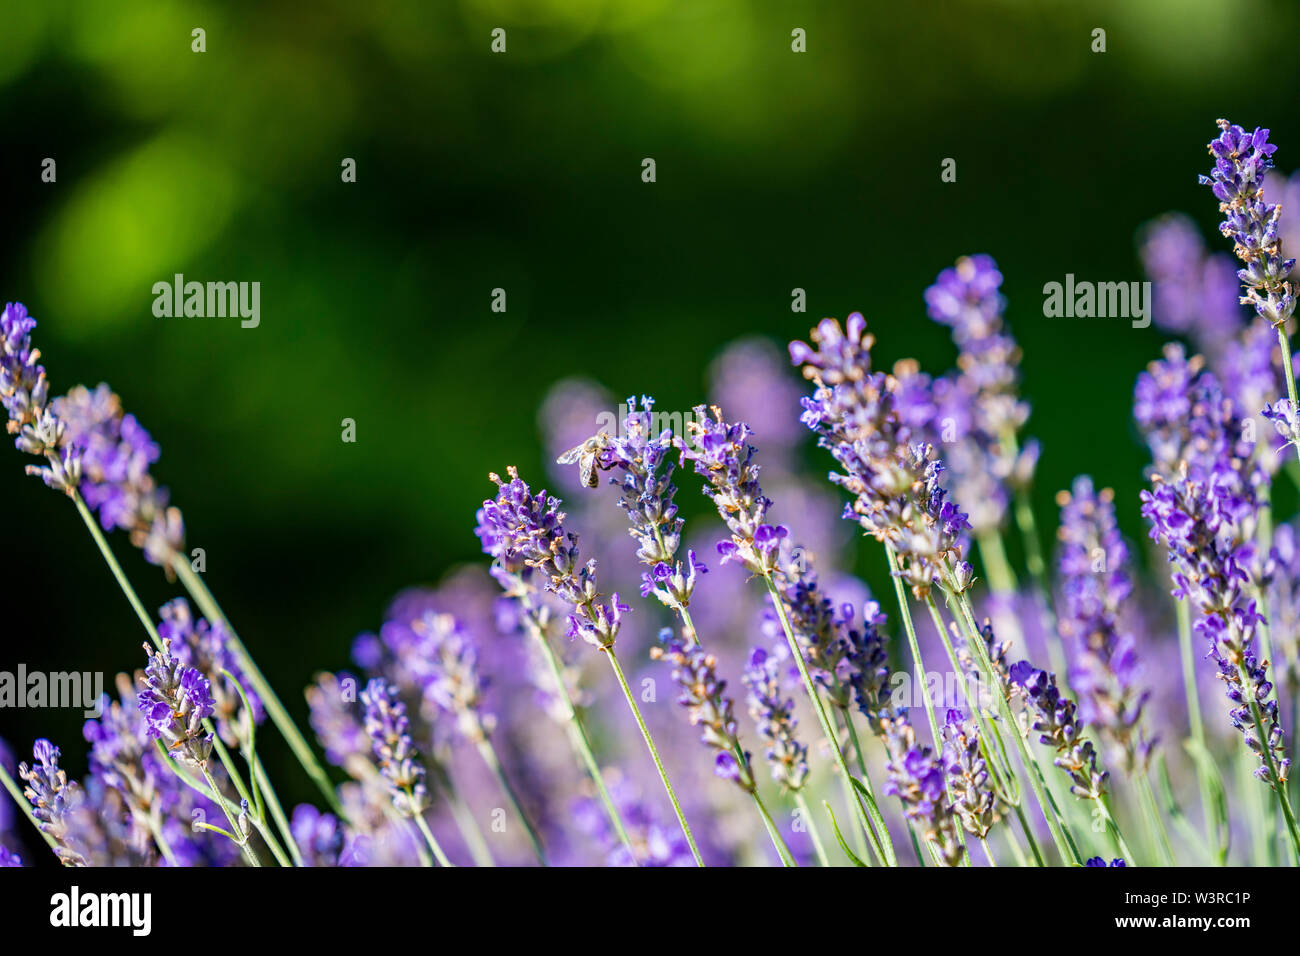 bees collecting honey on lavender ; duftender Lavendel mit Bienen; Nahaufnahme; Lavandula angustifolia - Stock Image